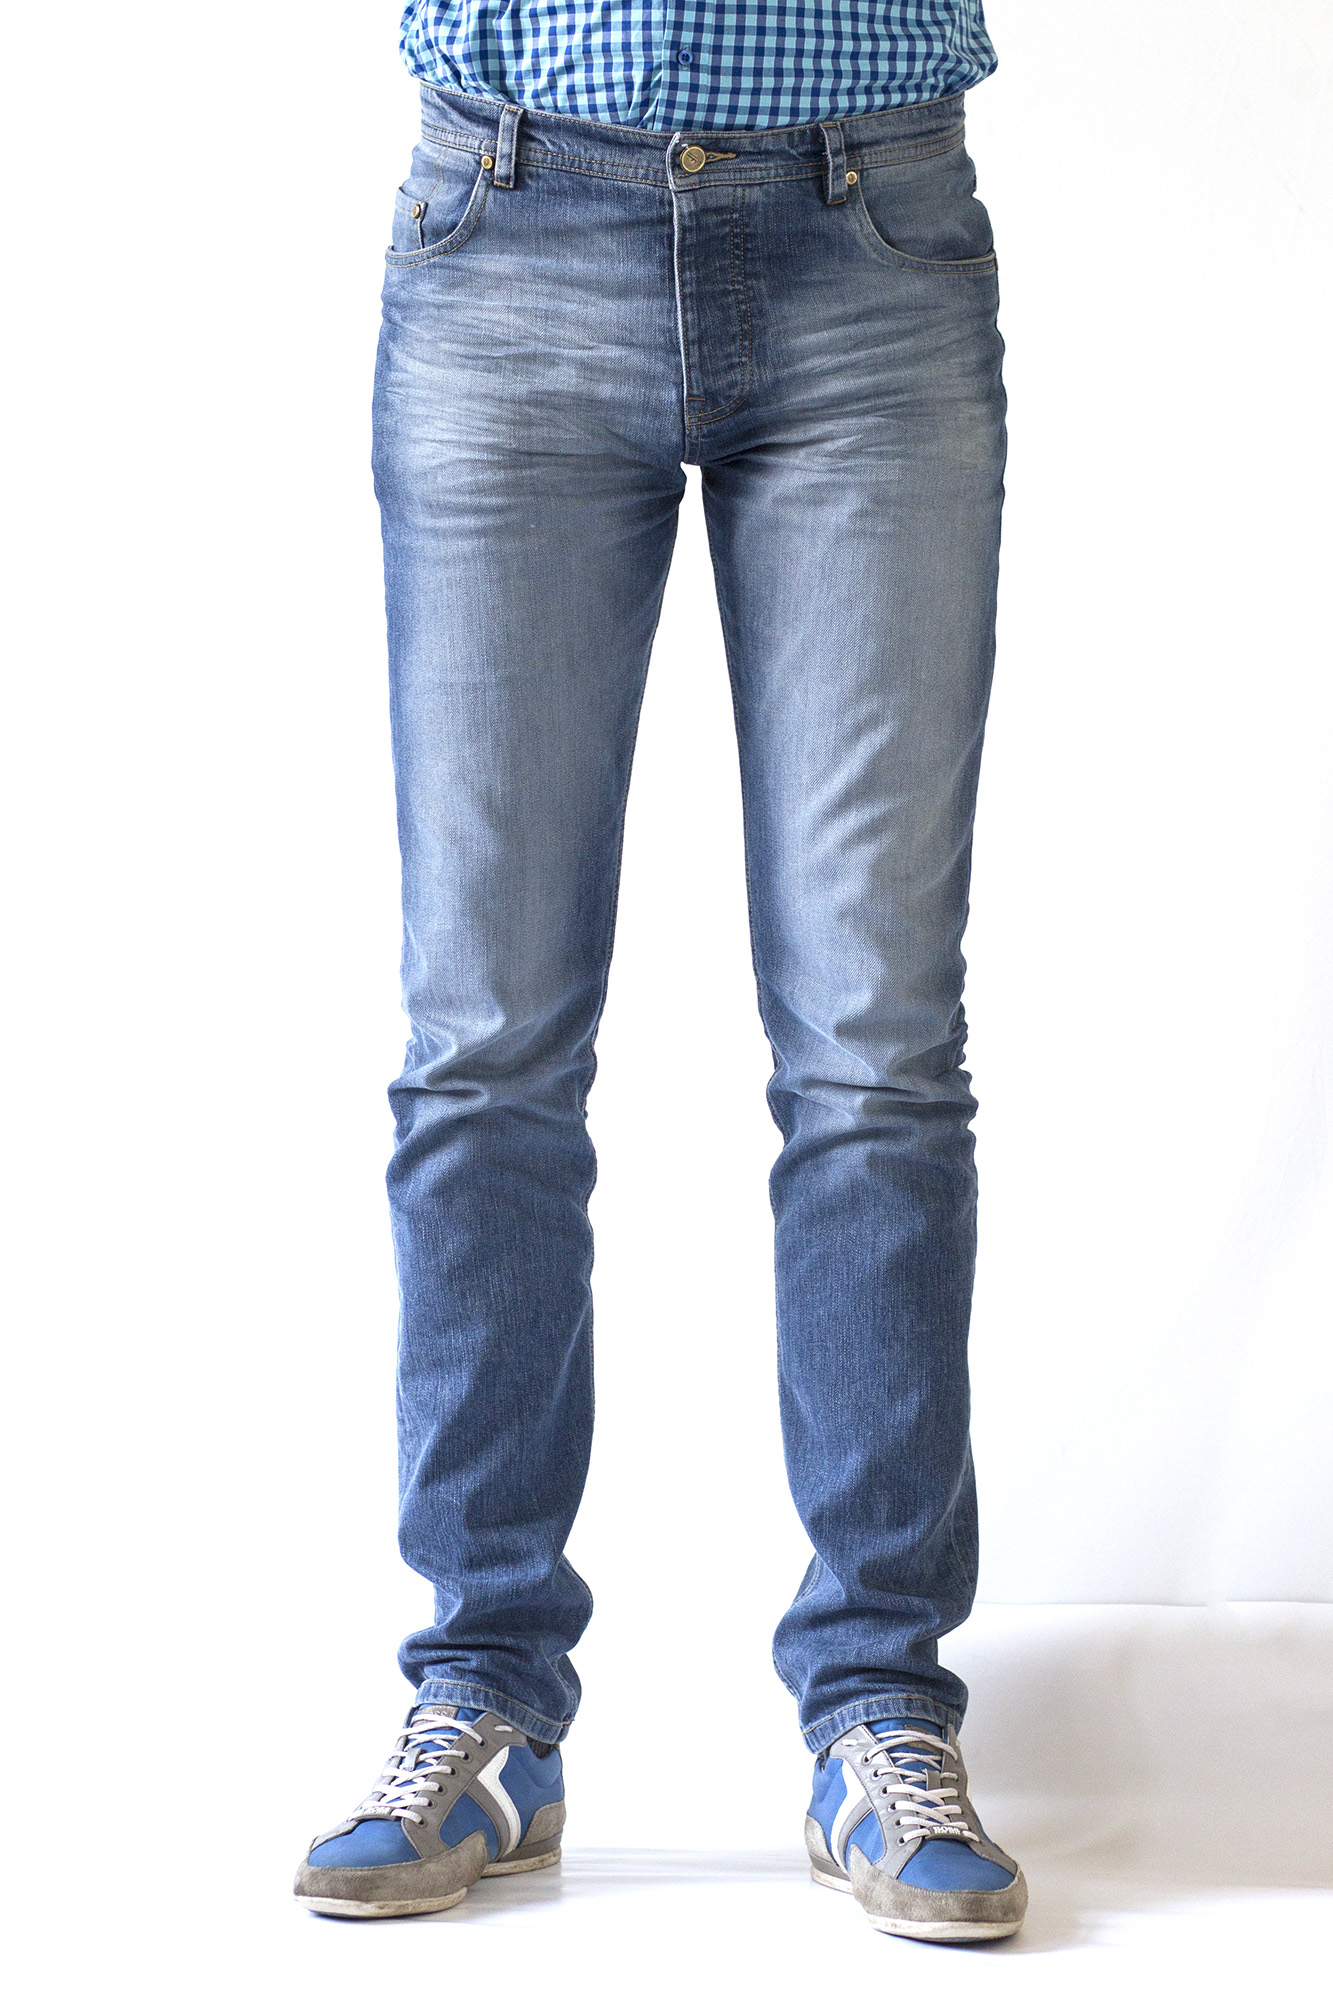 classic tapered jeans wiedemann jeans official websitewiedemann jeans official website. Black Bedroom Furniture Sets. Home Design Ideas